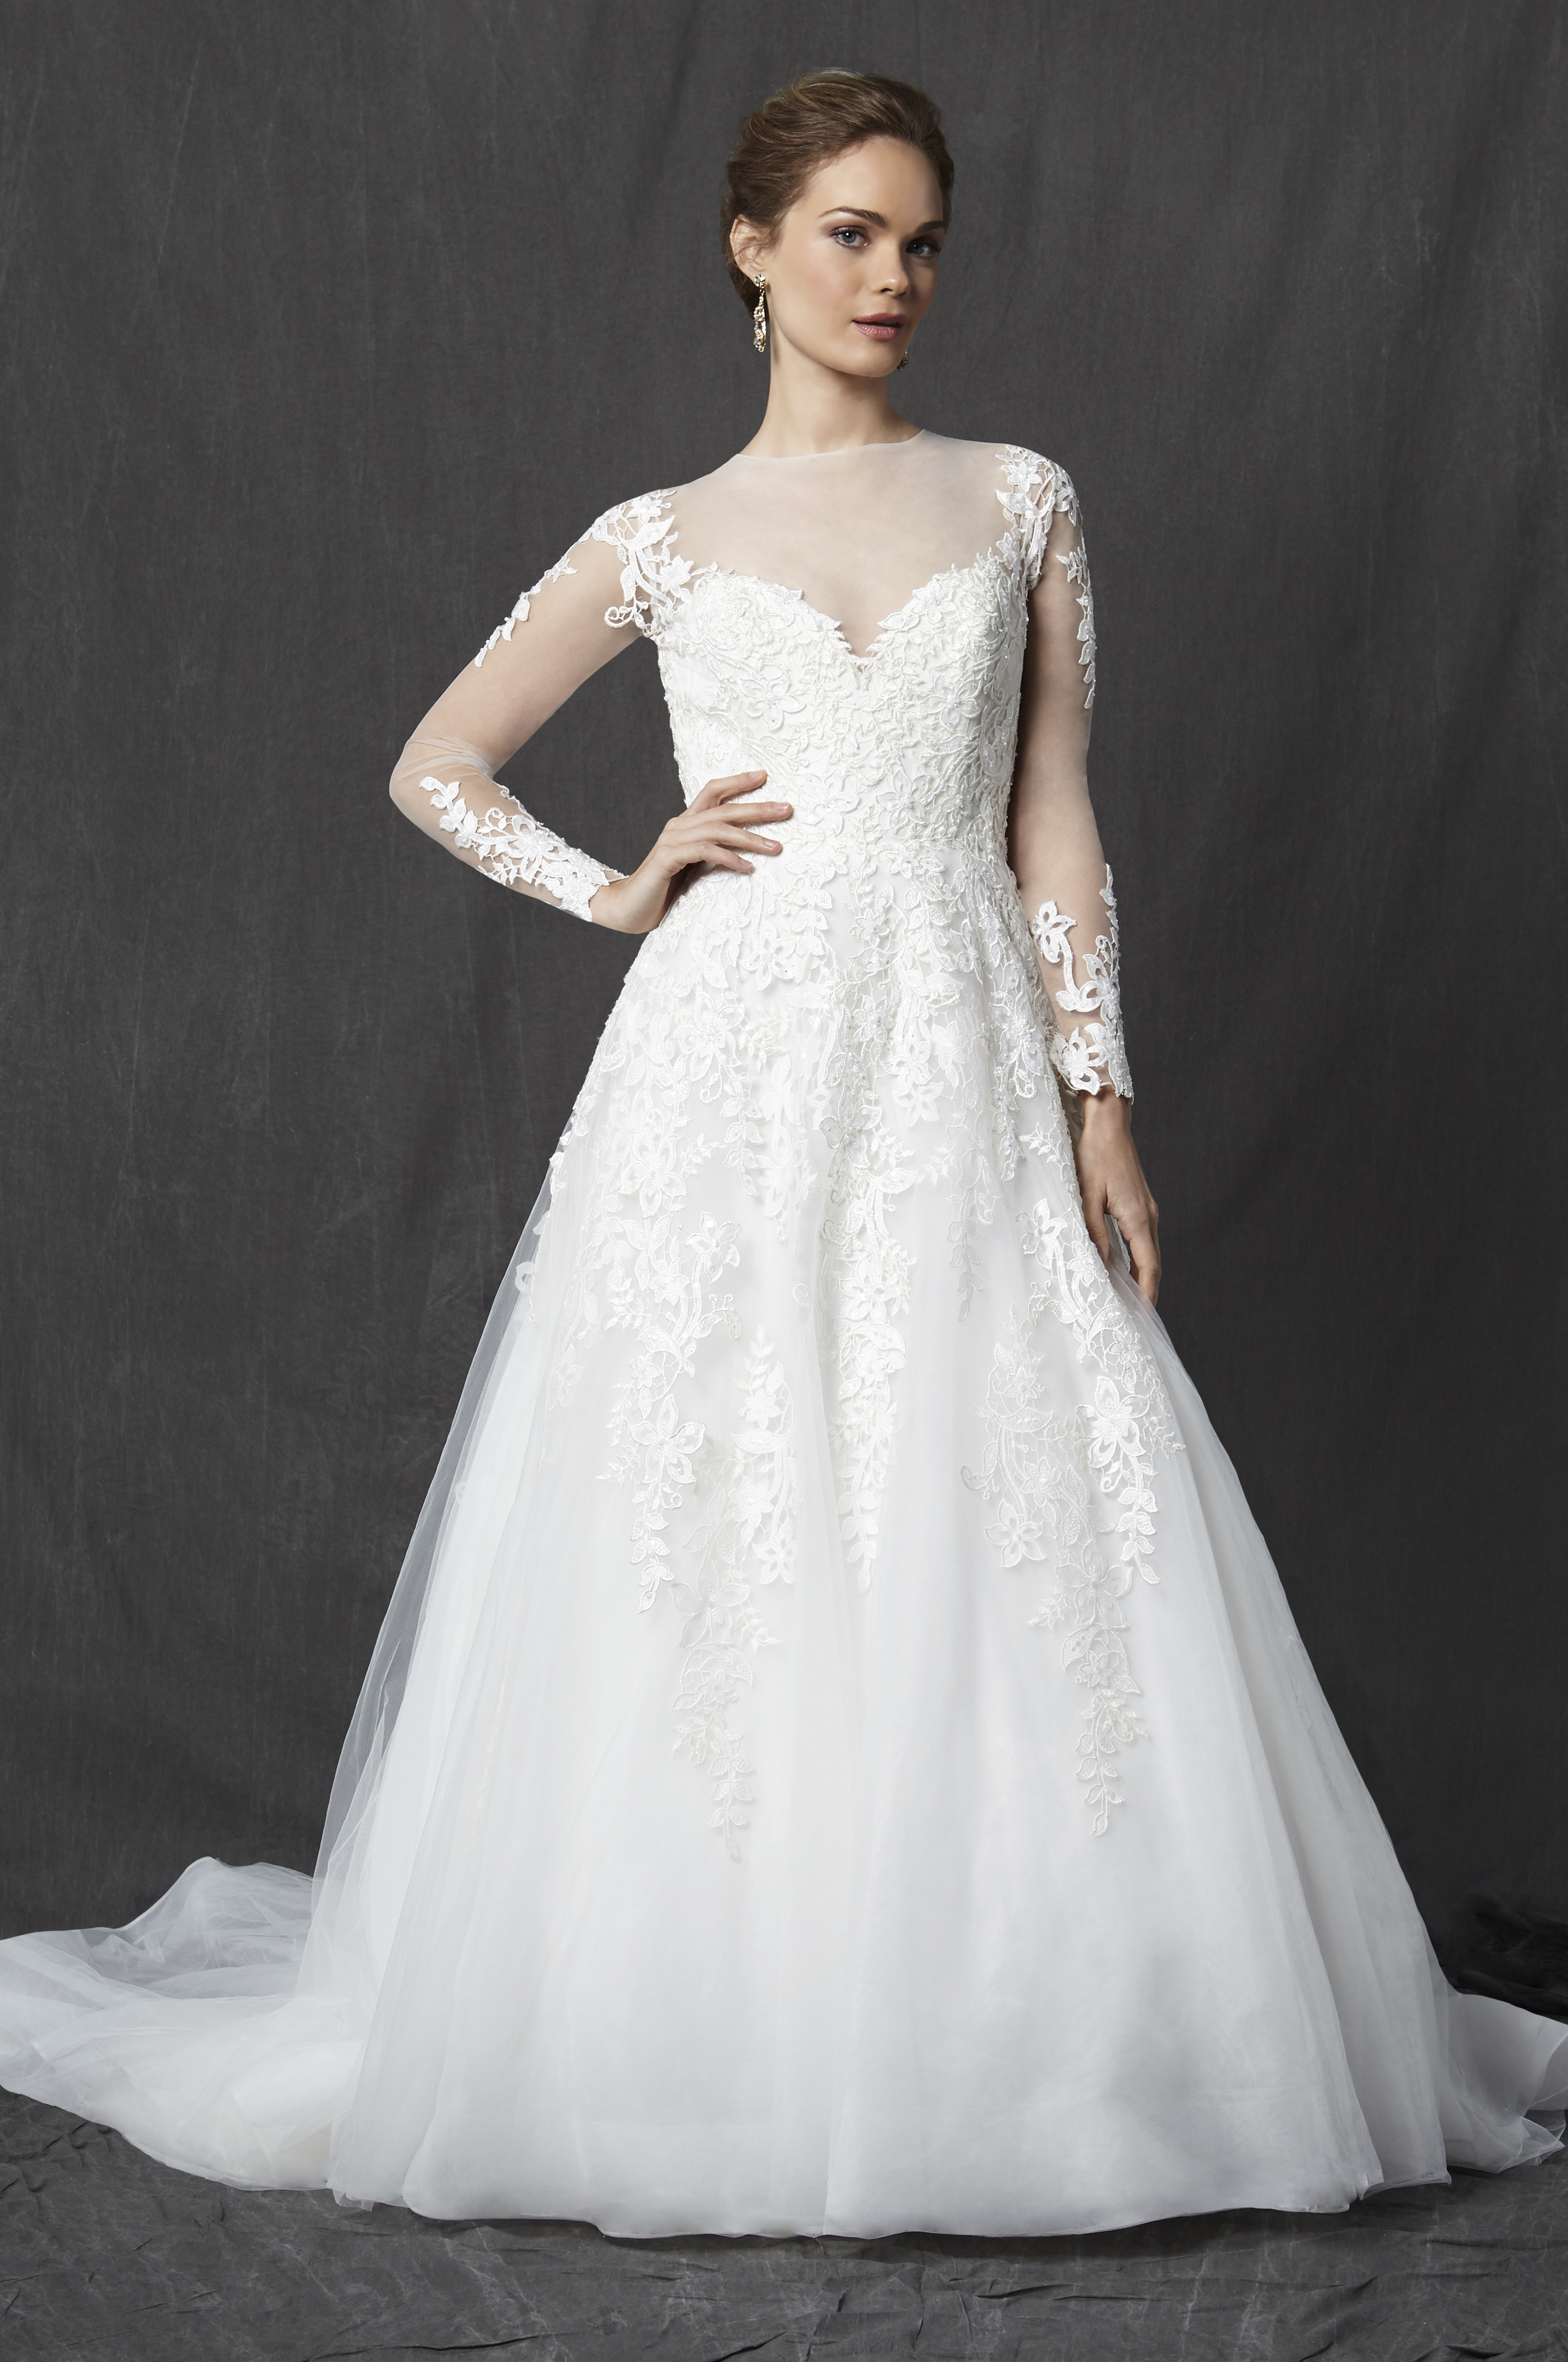 Illusion Sweetheart Neckline Long Sleeve Lace A Line Wedding Dress